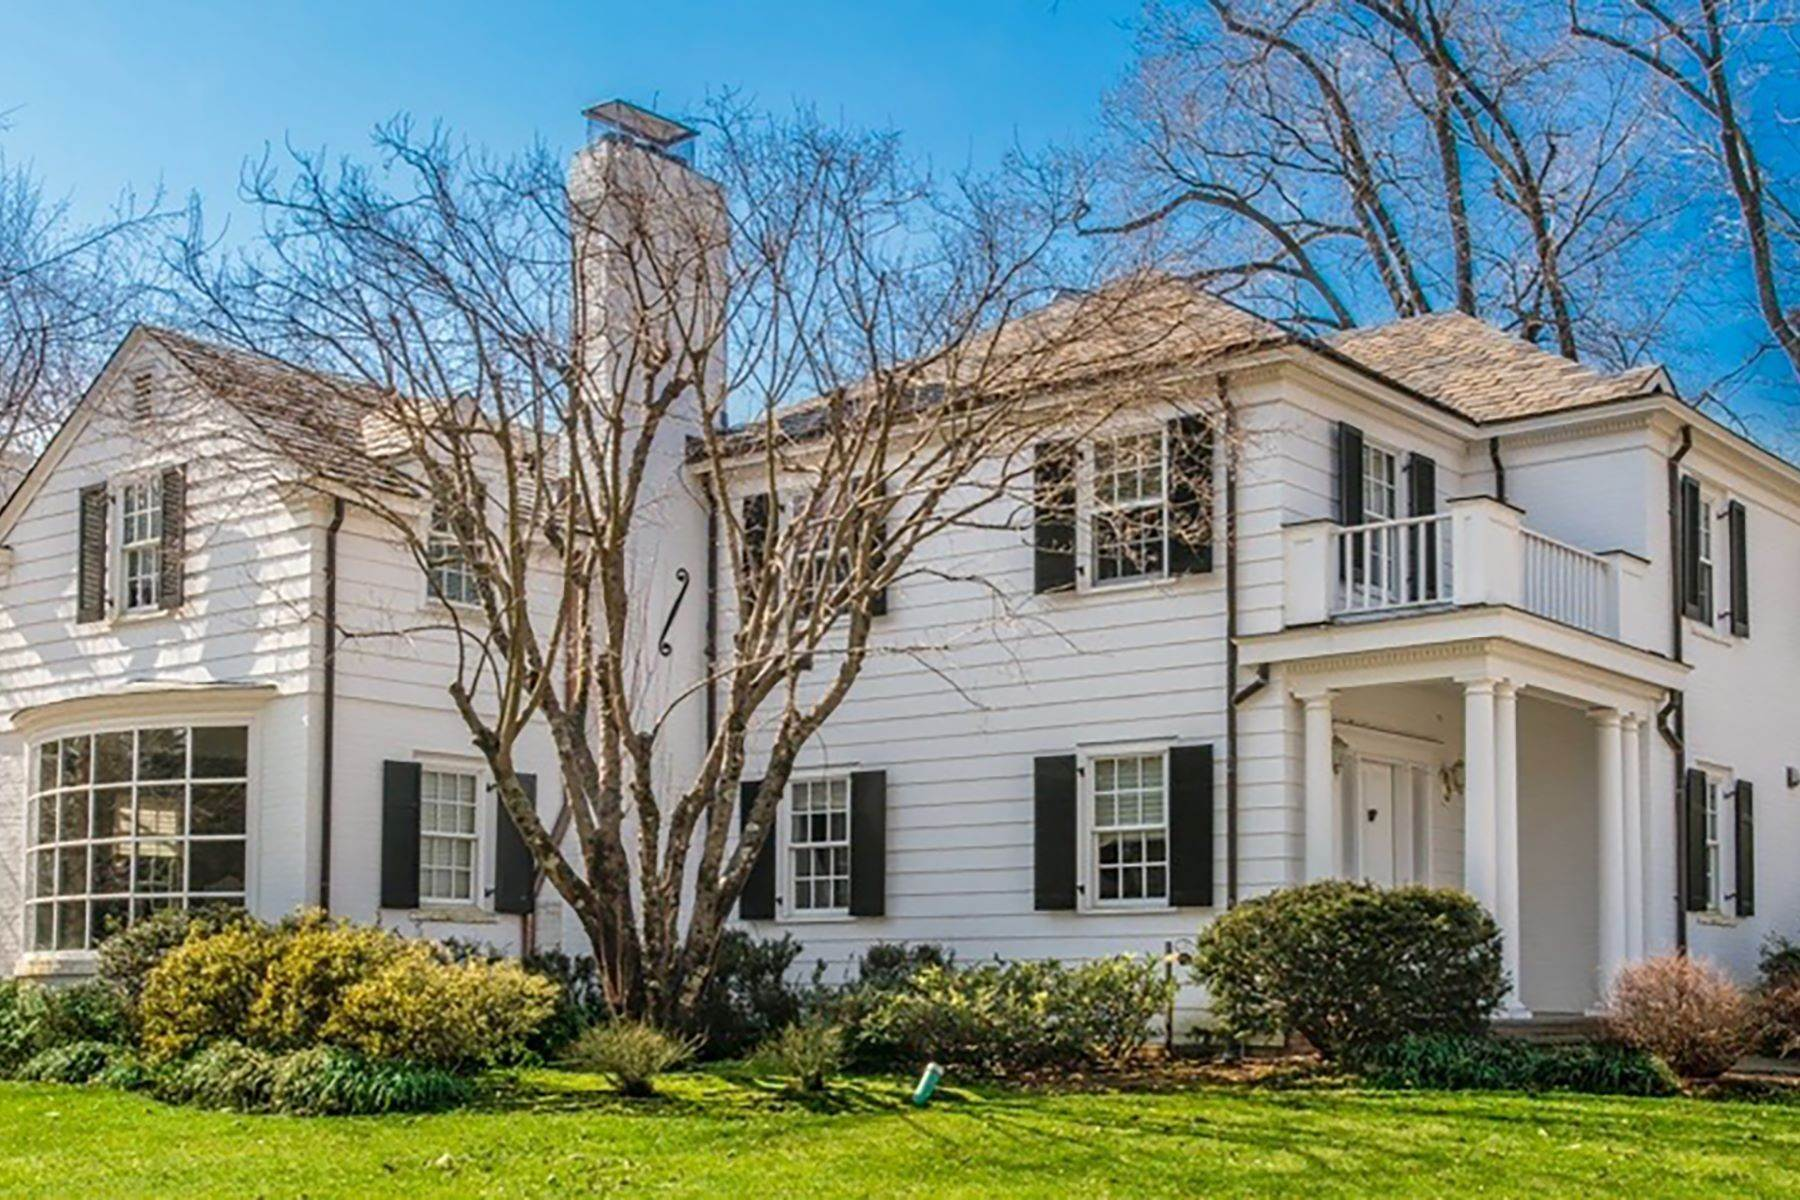 Single Family Homes for Sale at Stunning And Spacious 5 Bedroom Colonial 16 Dunham Road Scarsdale, New York 10583 United States